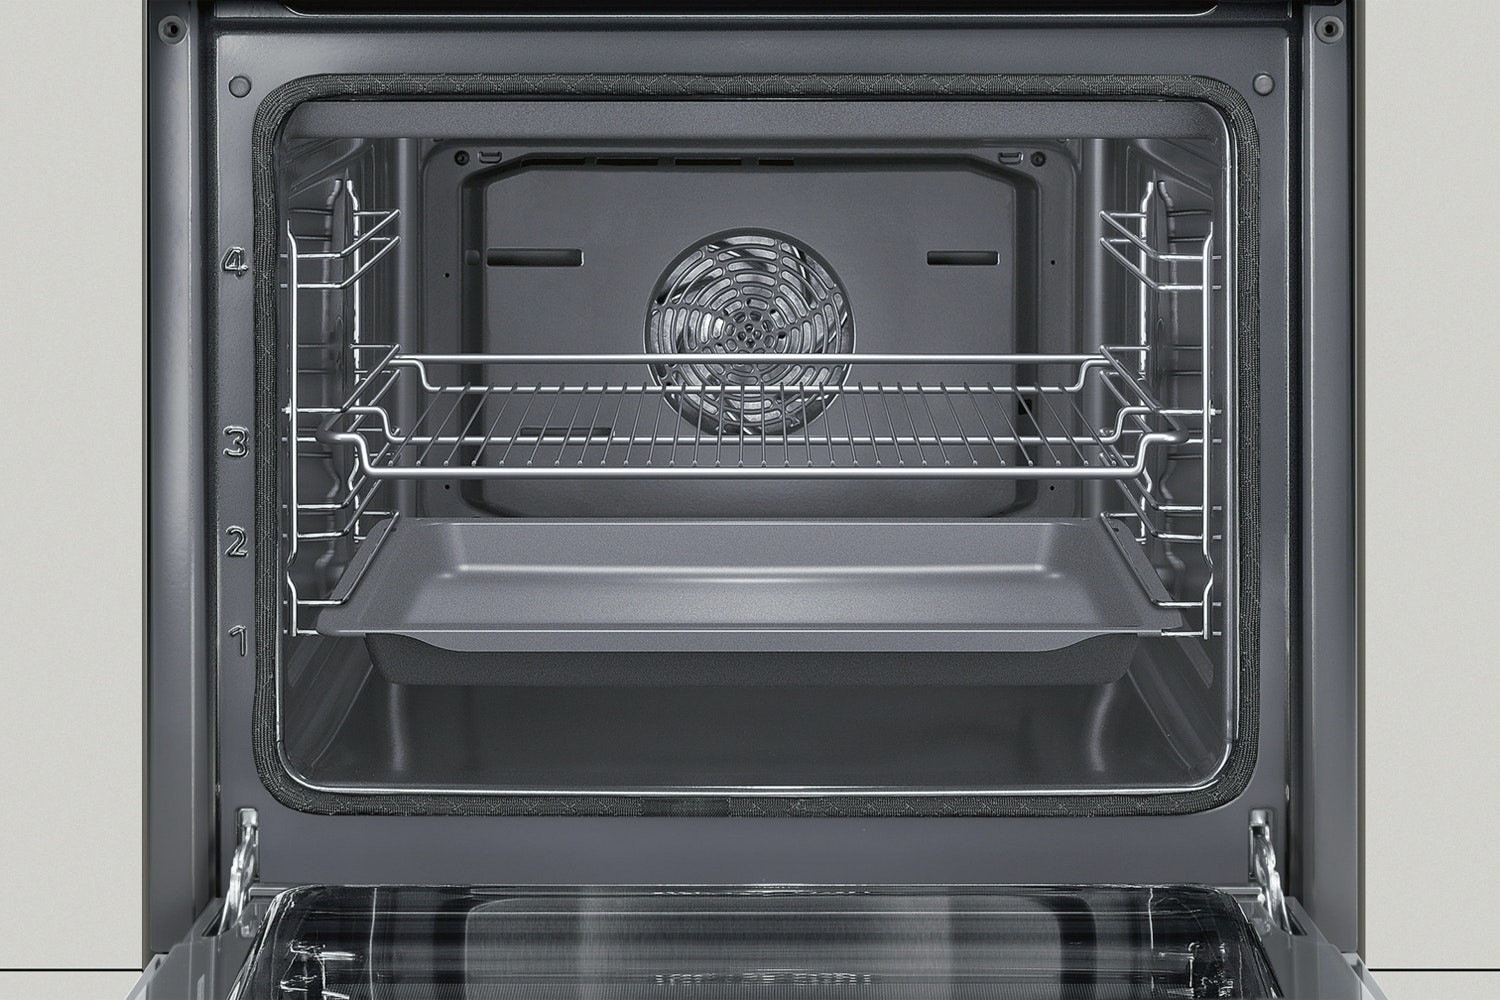 Neff Built In Electric Single Oven | B14P42N5GB